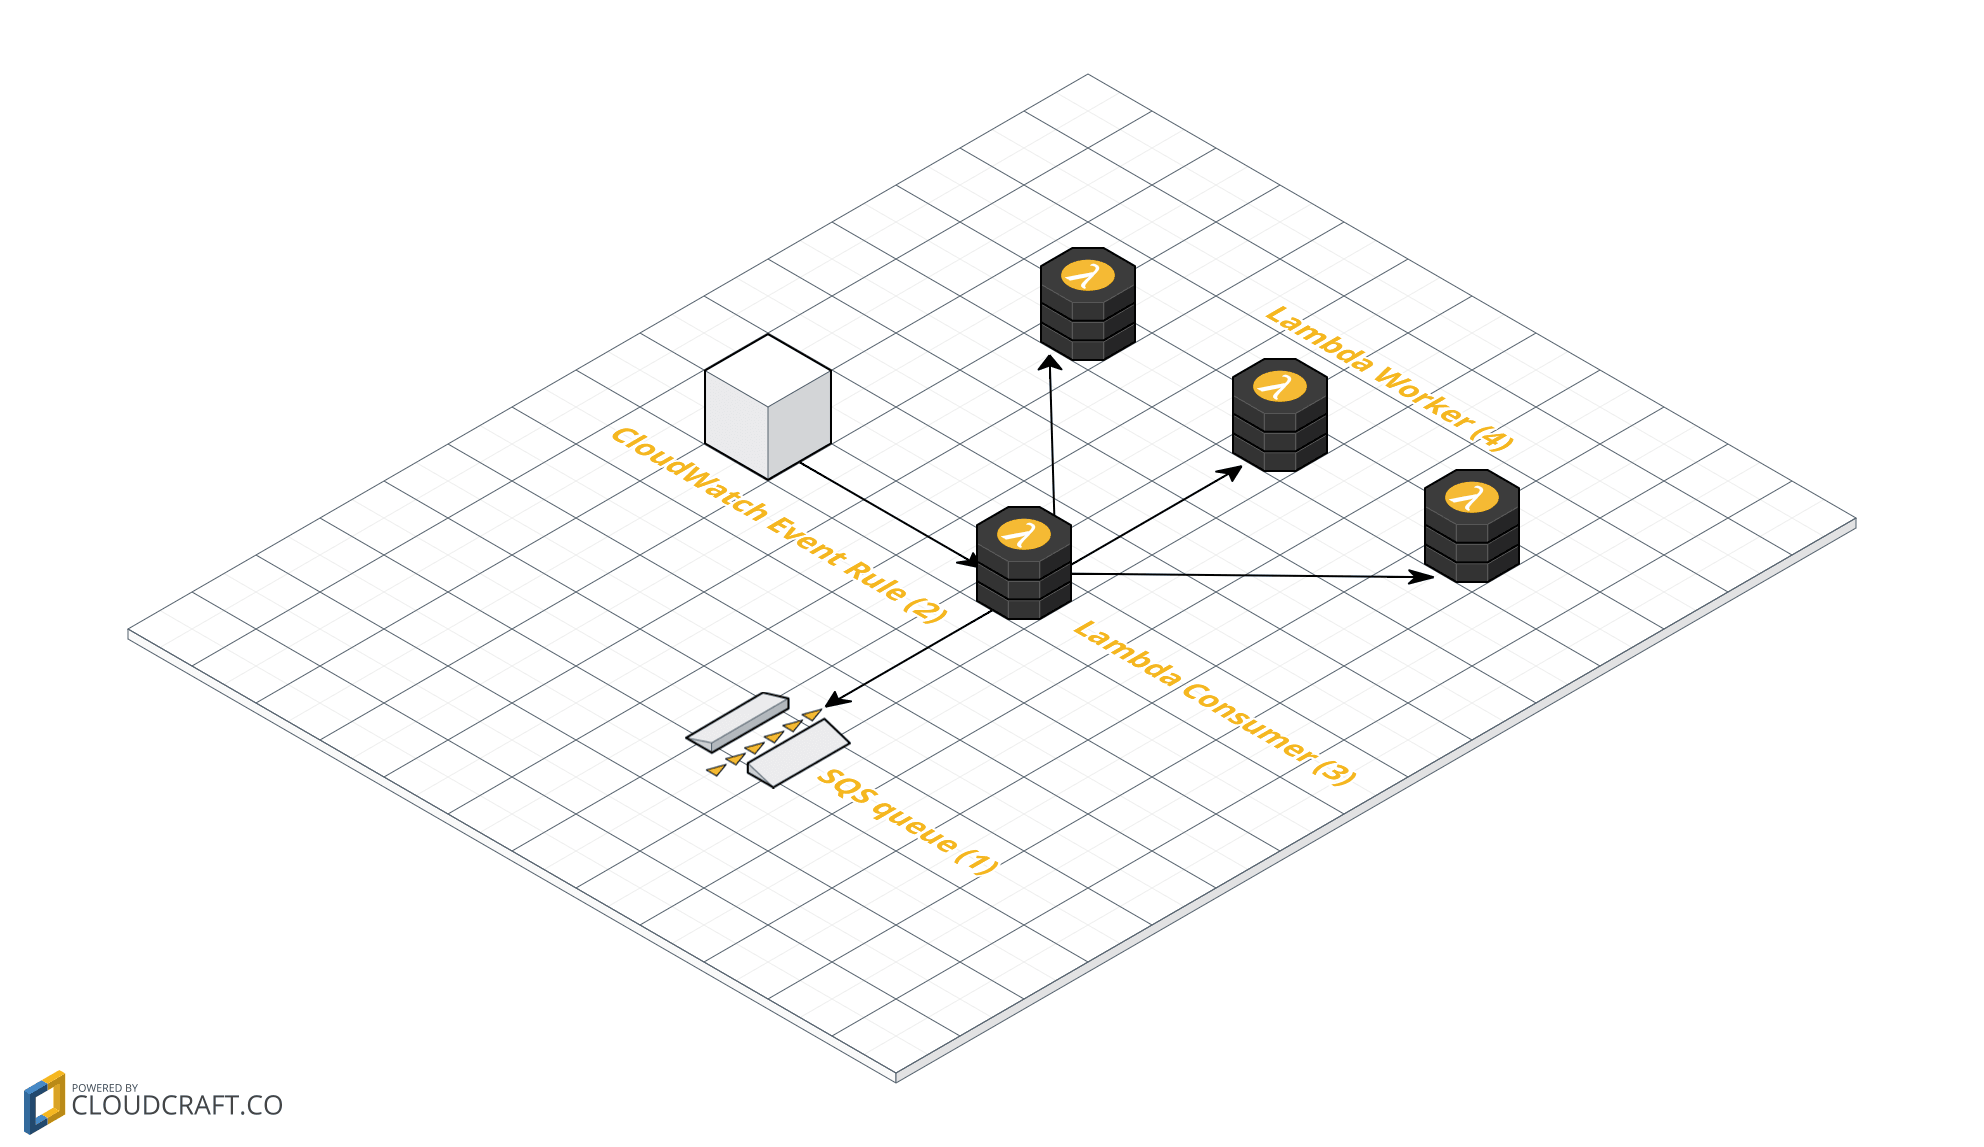 Integrate SQS and Lambda: serverless architecture for